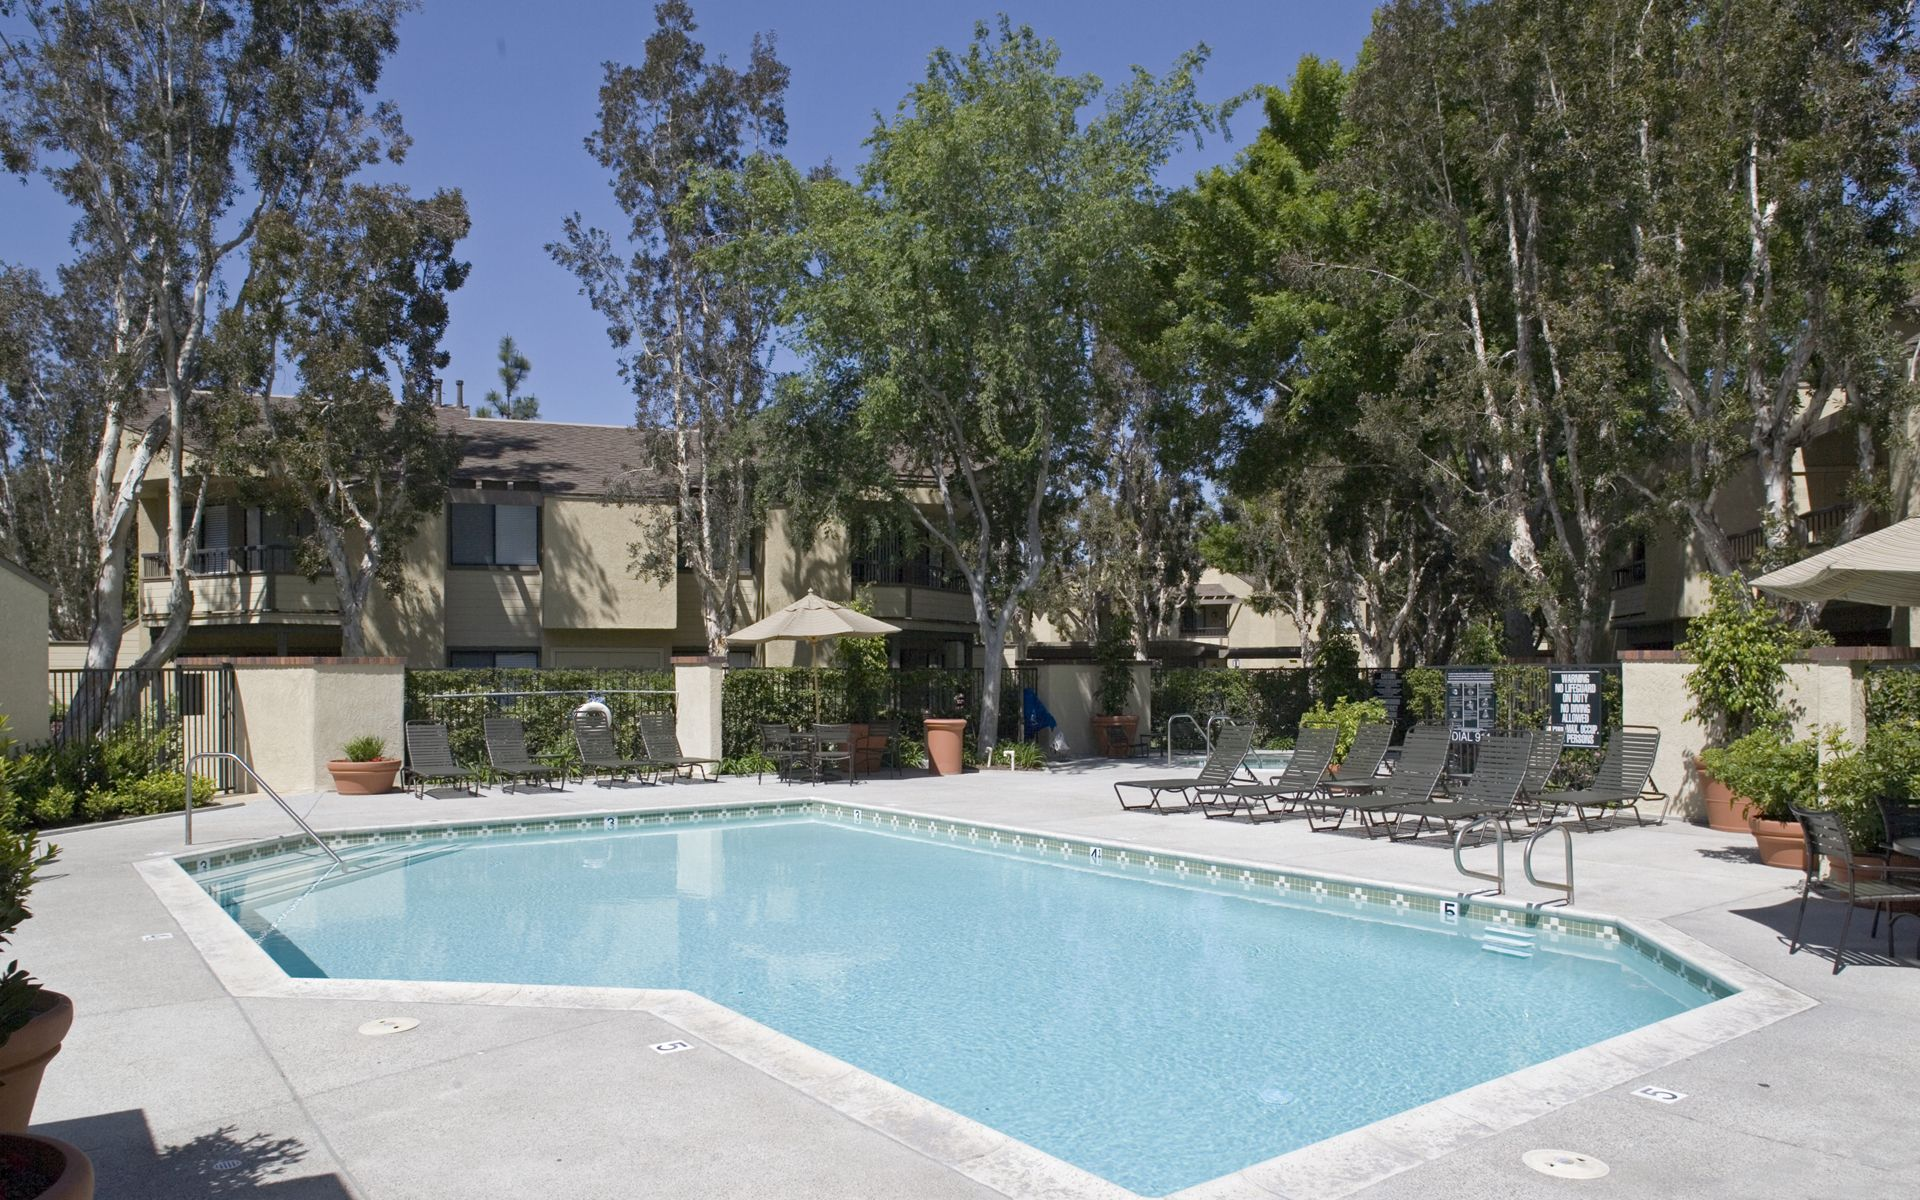 Pool view at Cedar Creek Apartment Homes in Irvine, CA.